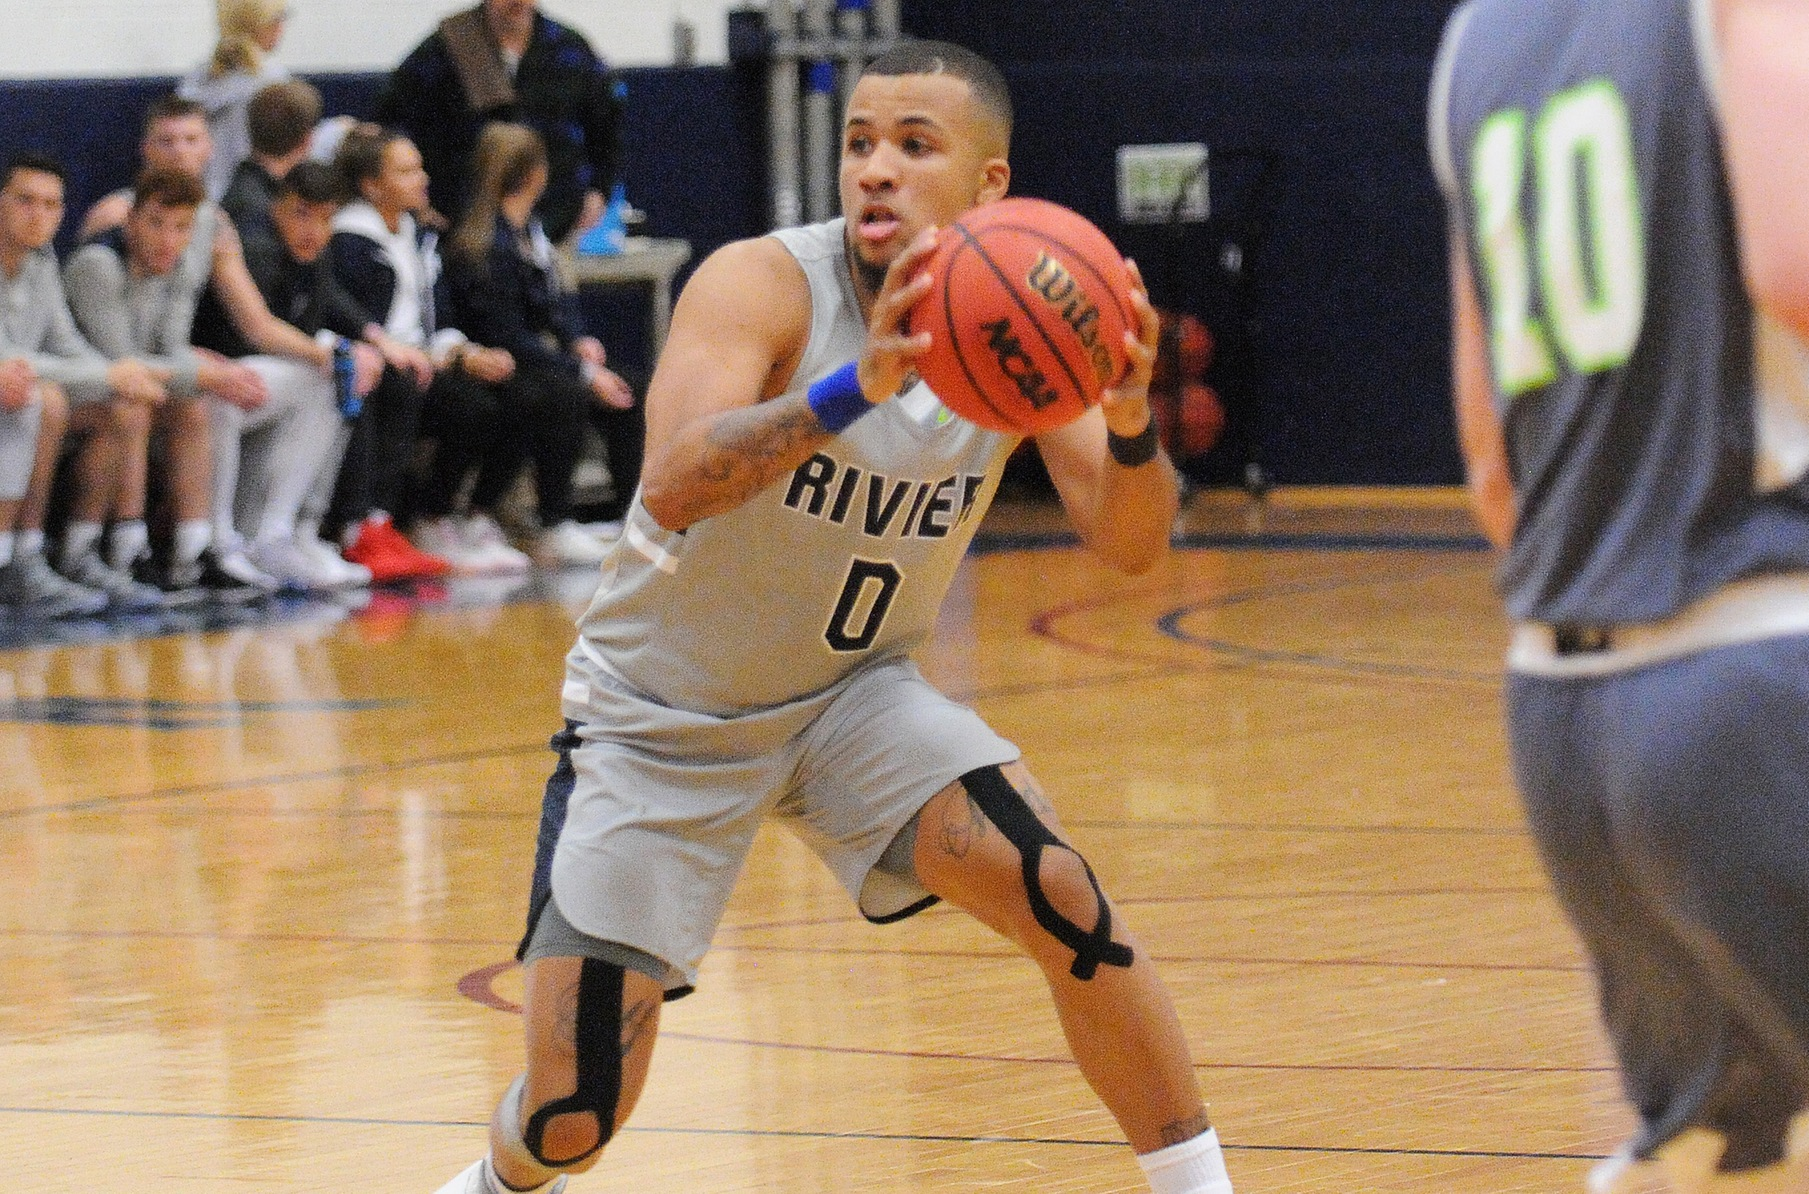 Men's Basketball: Raiders tripped up by Wentworth, 71-59